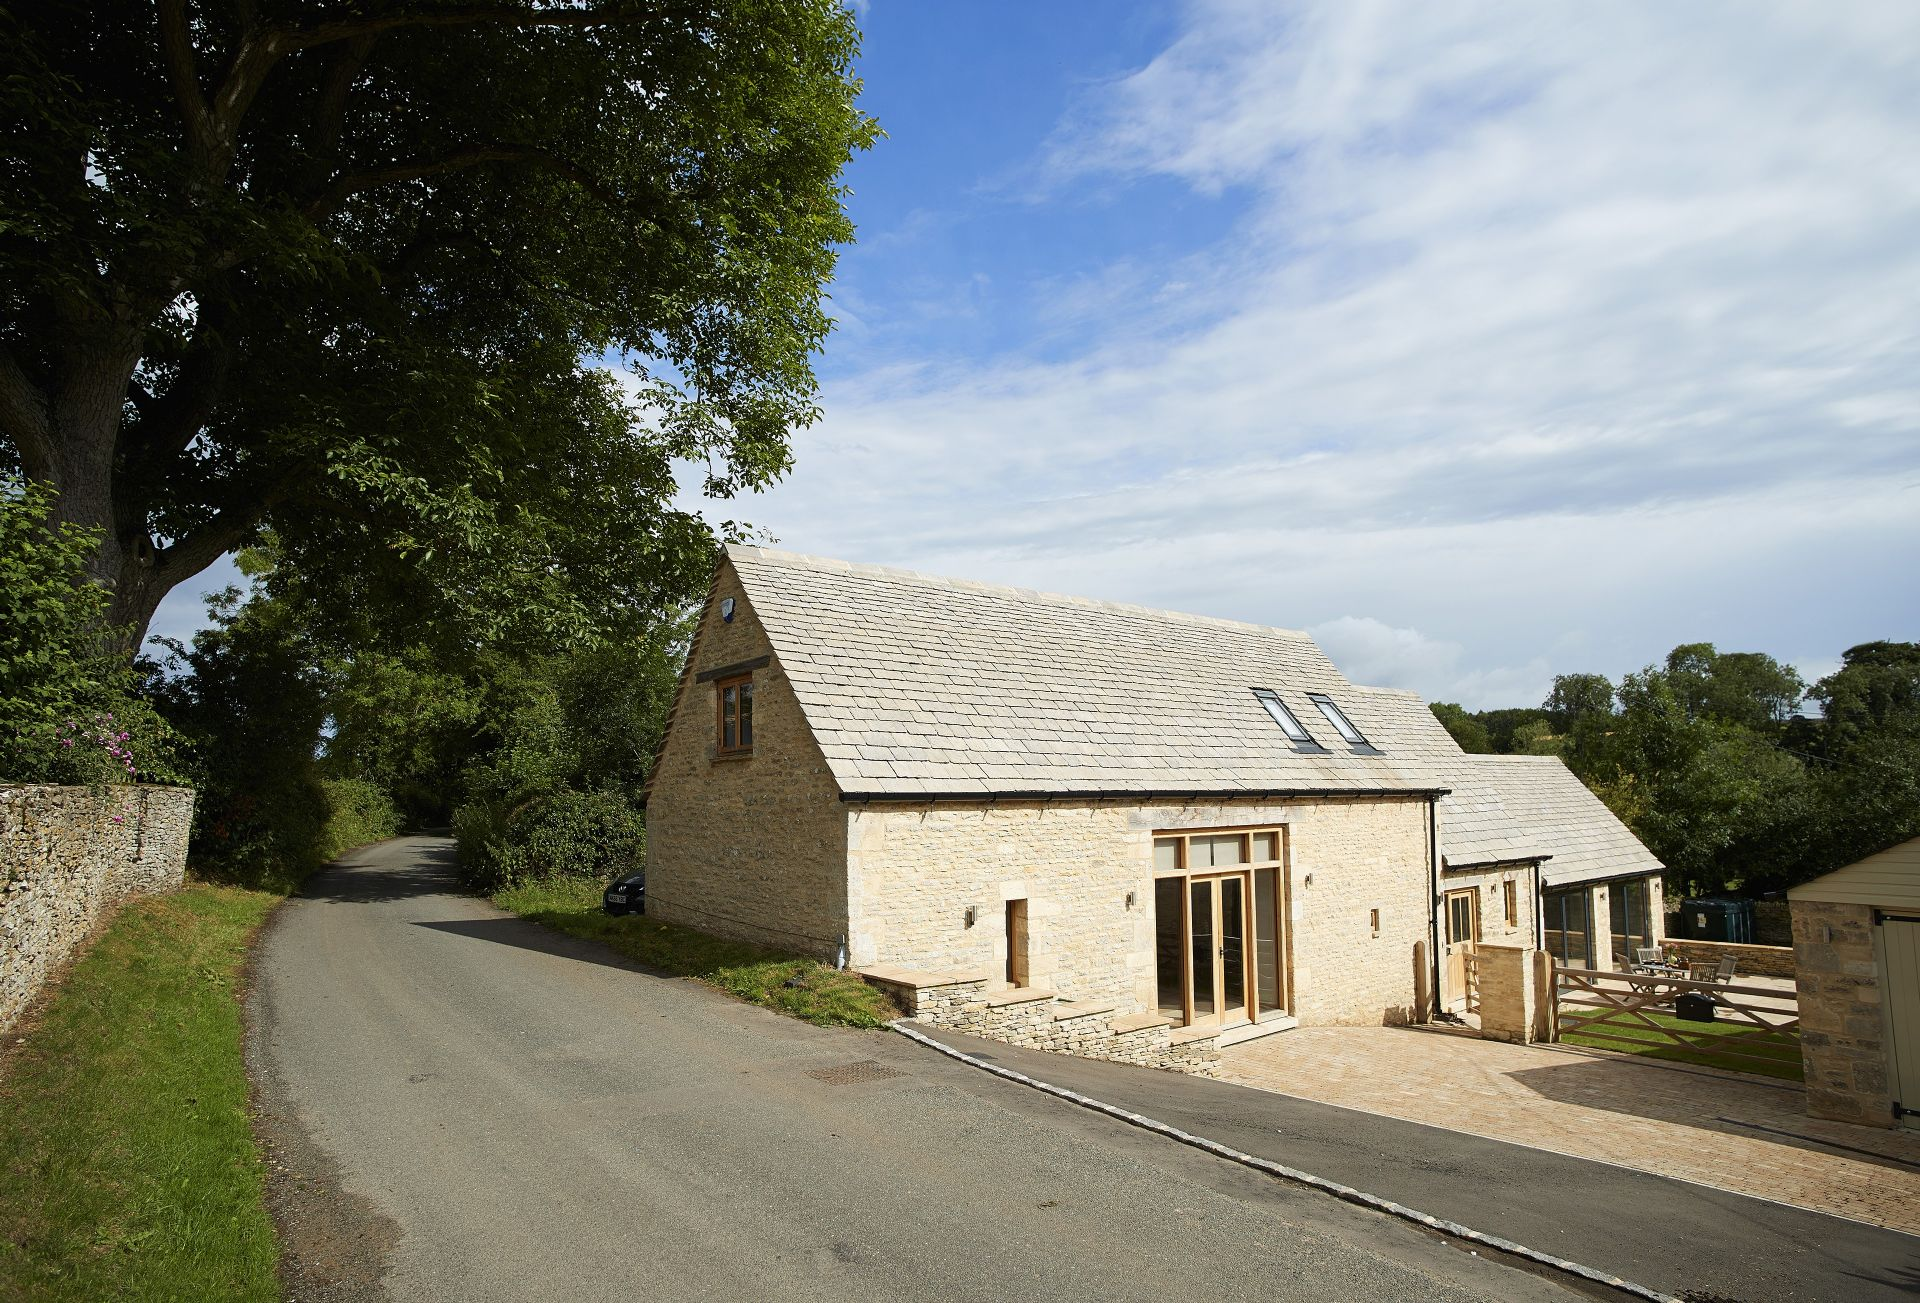 Rosebank Barn is set in rolling countryside on the edge of the enchanting village of Ablington, close to Bibury, in the Cotswolds Area of Outstanding Natural Beauty